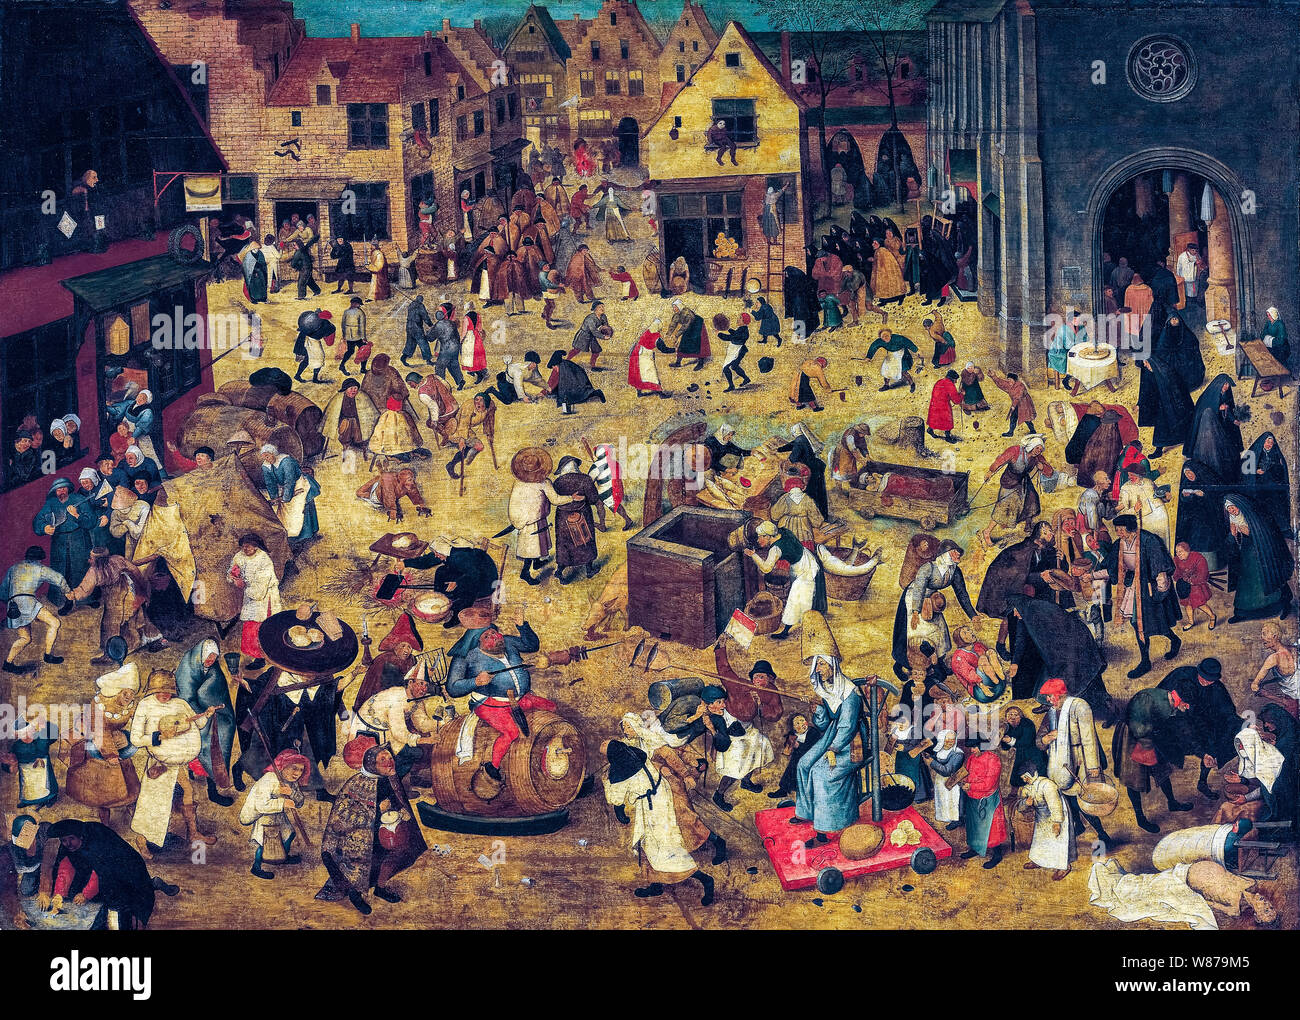 Pieter Brueghel the Younger, The Combat between Carnival and Lent, painting, 1600-1638 Stock Photo